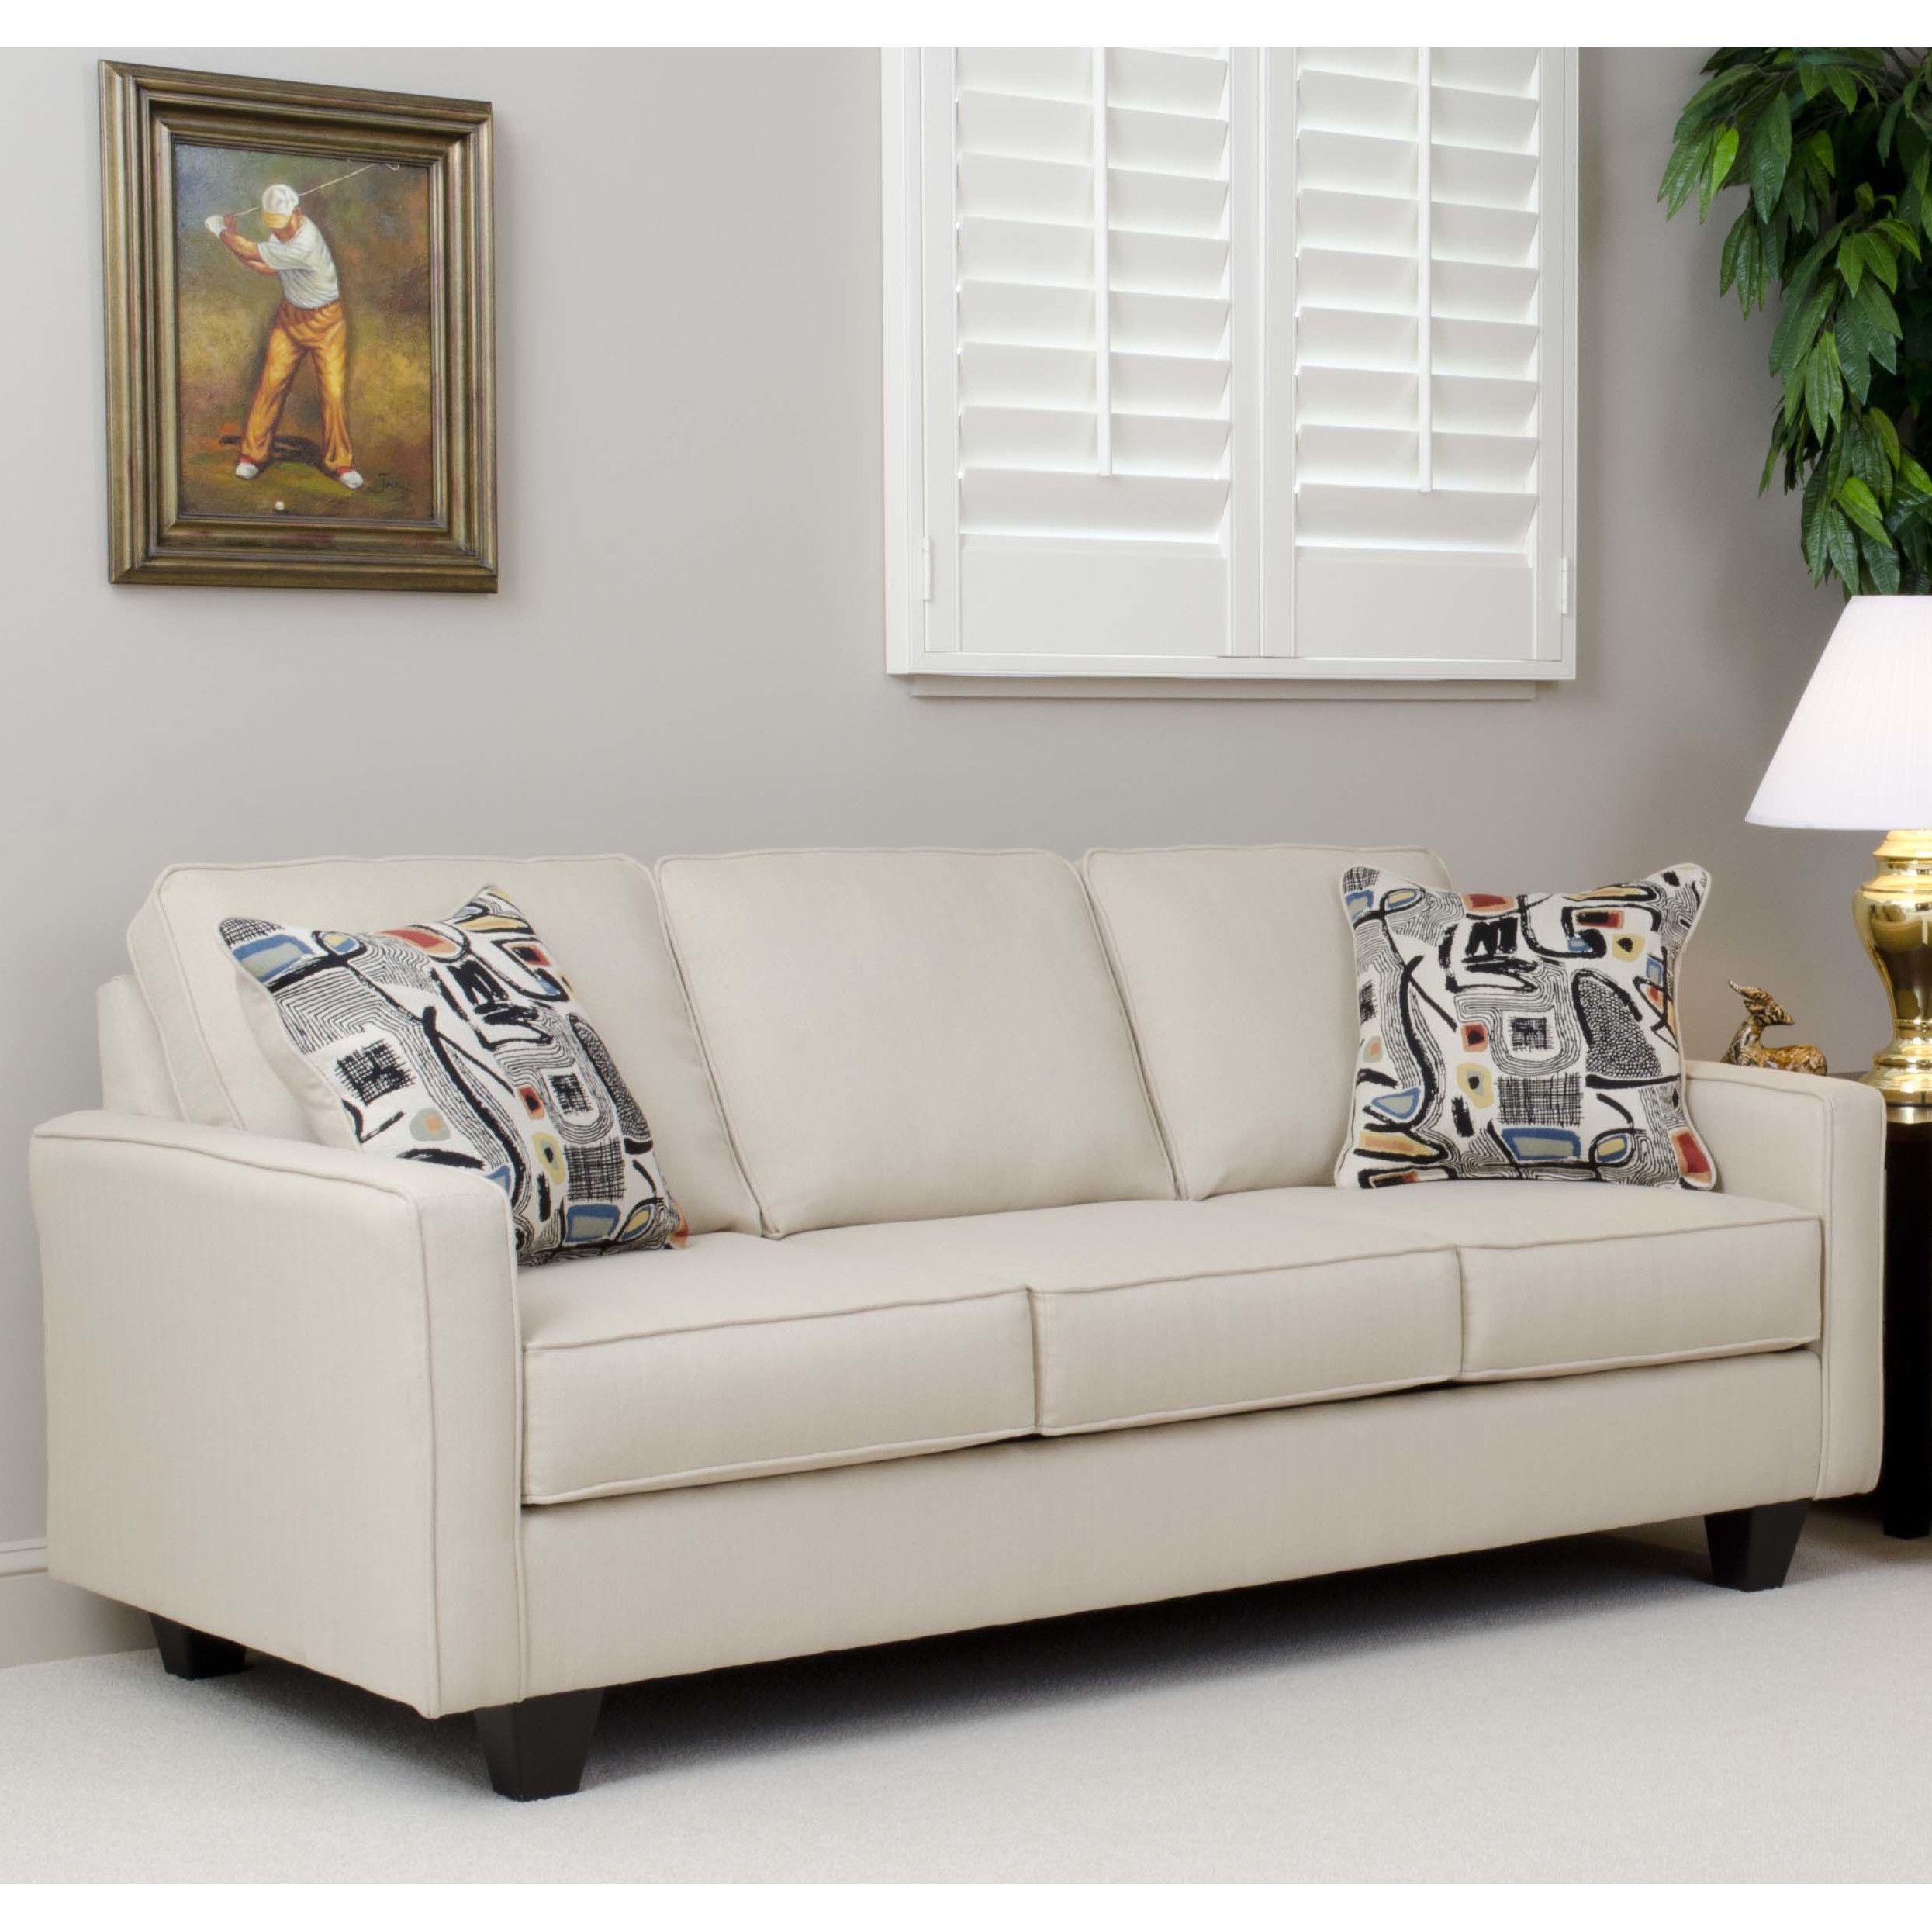 Serta Upholstery Aries Sofa | Upholstery, Oakwood F.C. And Interiors